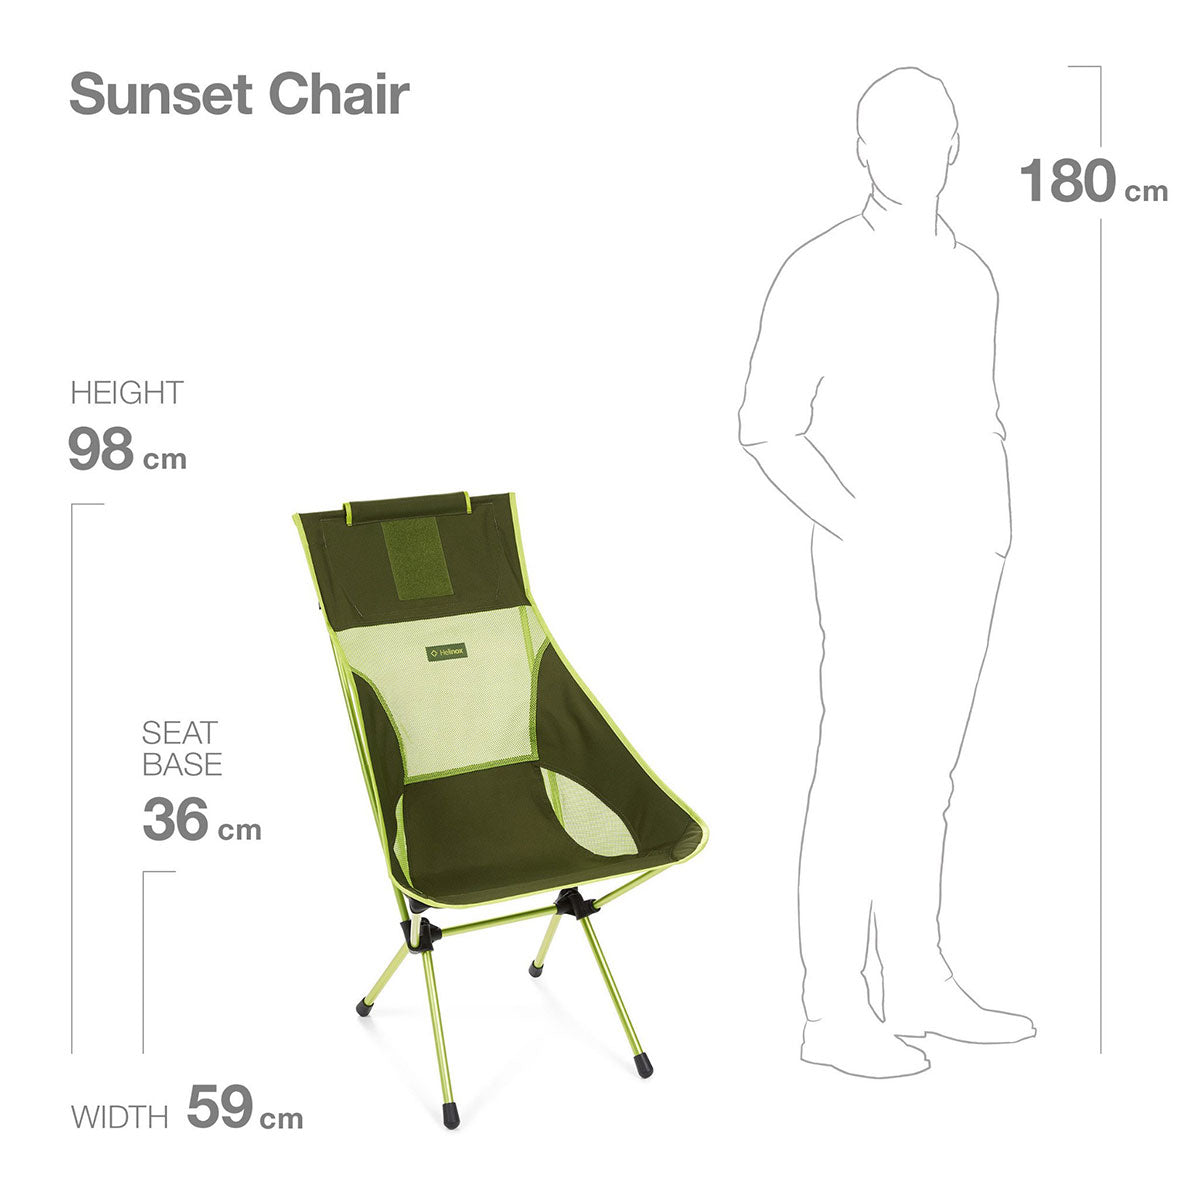 Helinox Sunset Chair Overview